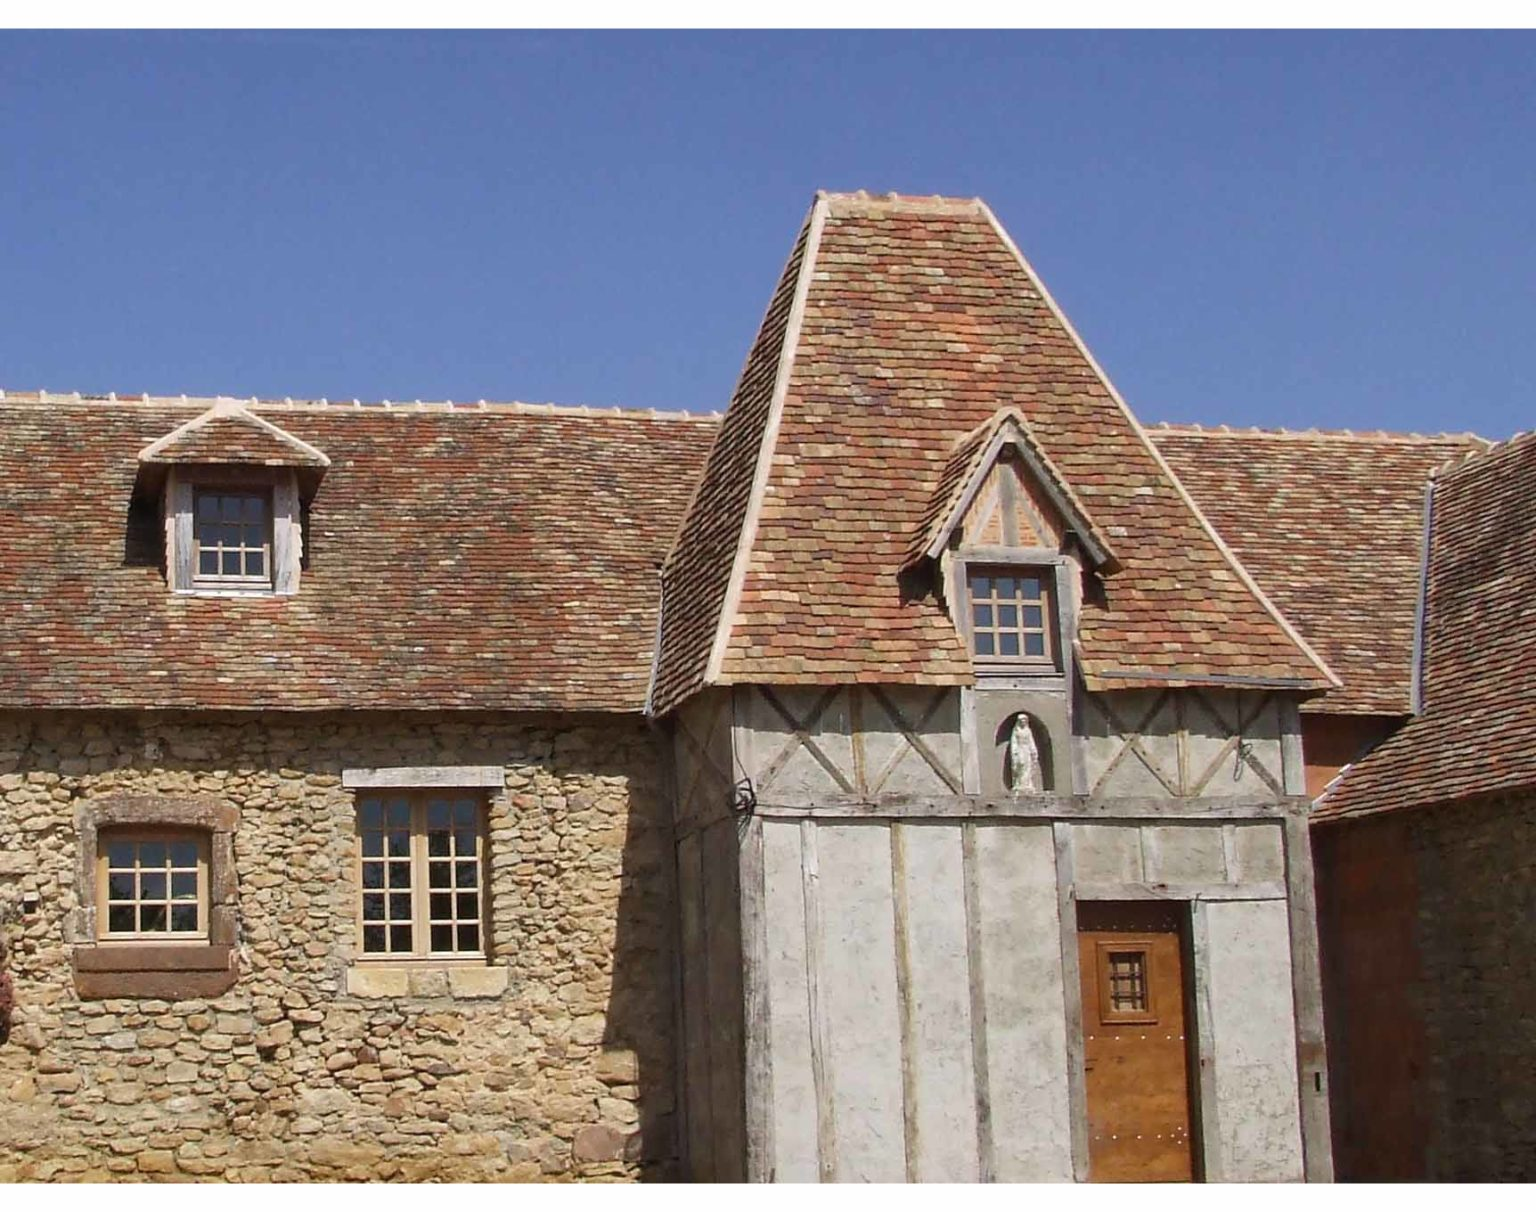 Reclaimed French flat roof tiles